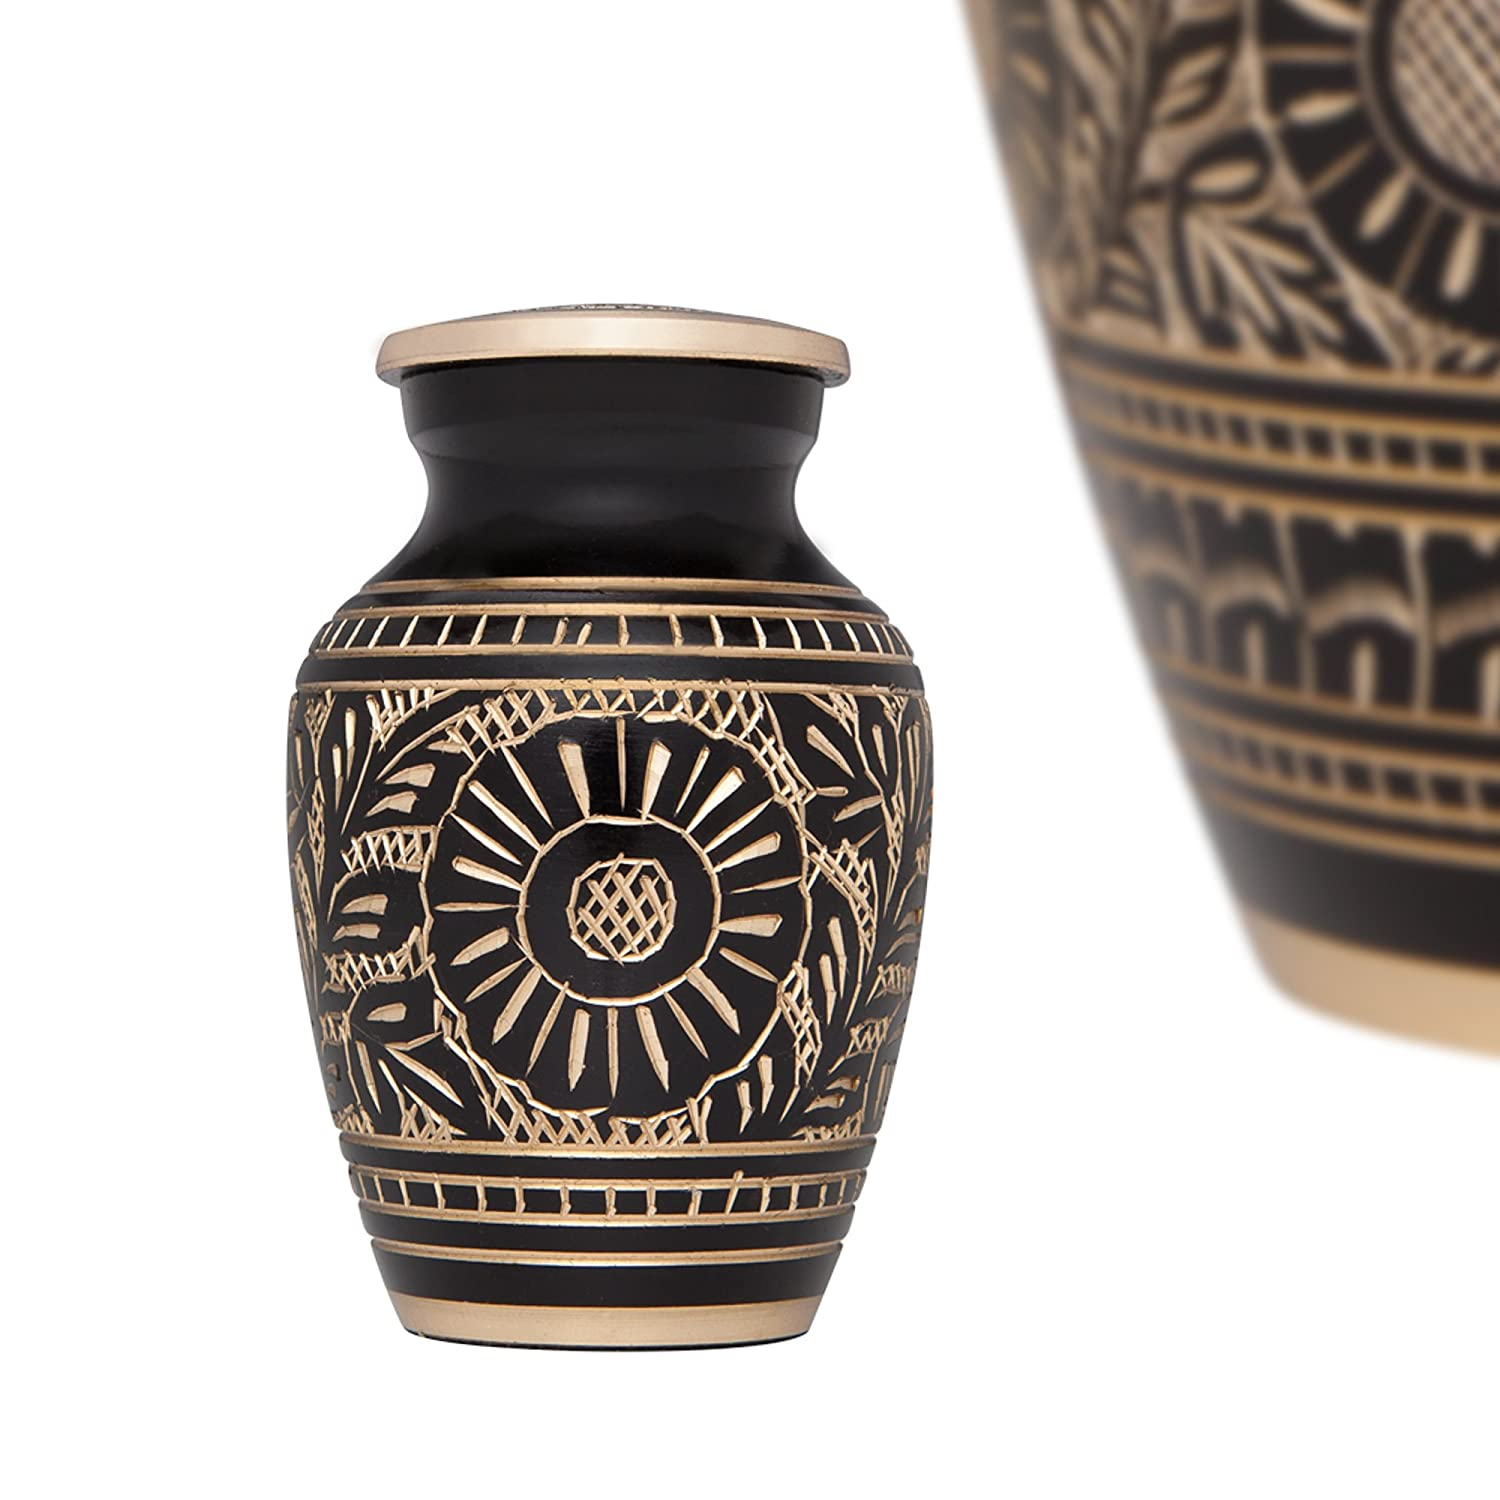 Black and Gold Mini Keepsake Urn • Miniature Funeral Cremation Urn fits Small Amount of Ashes • Marguerites Model Liliane Memorials Margeurites